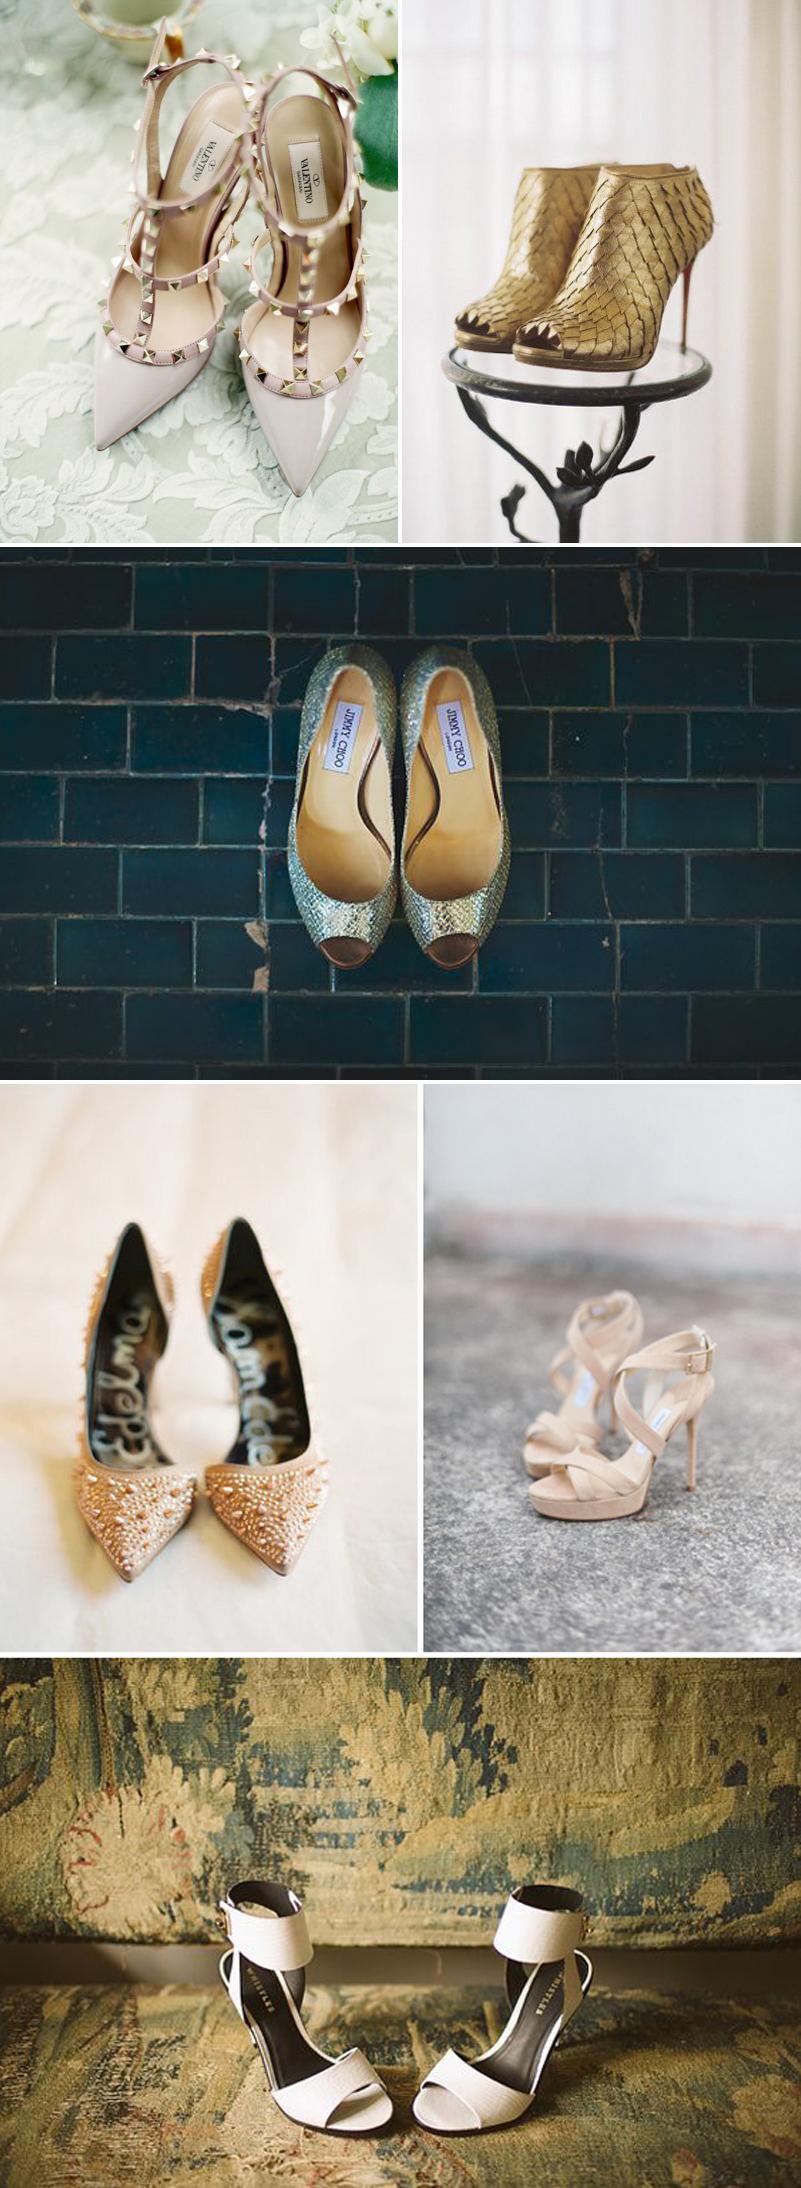 Coco Wedding Venues - City Chic Wedding Inspiration - Killer Heels.